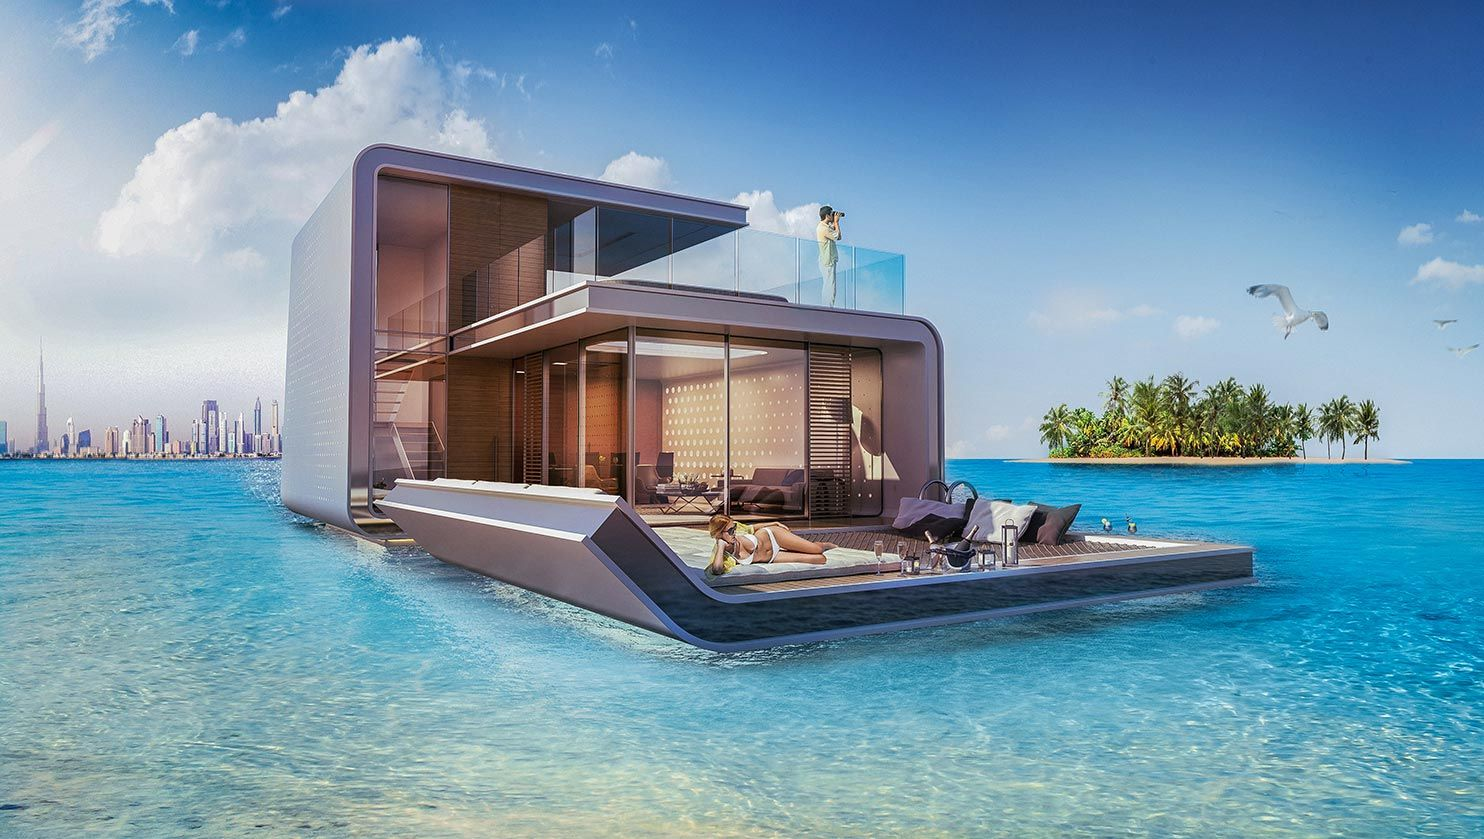 Unique Floating Homes For A Luxurious Lifestyle Seahorses - These amazing floating villas have underwater bedrooms